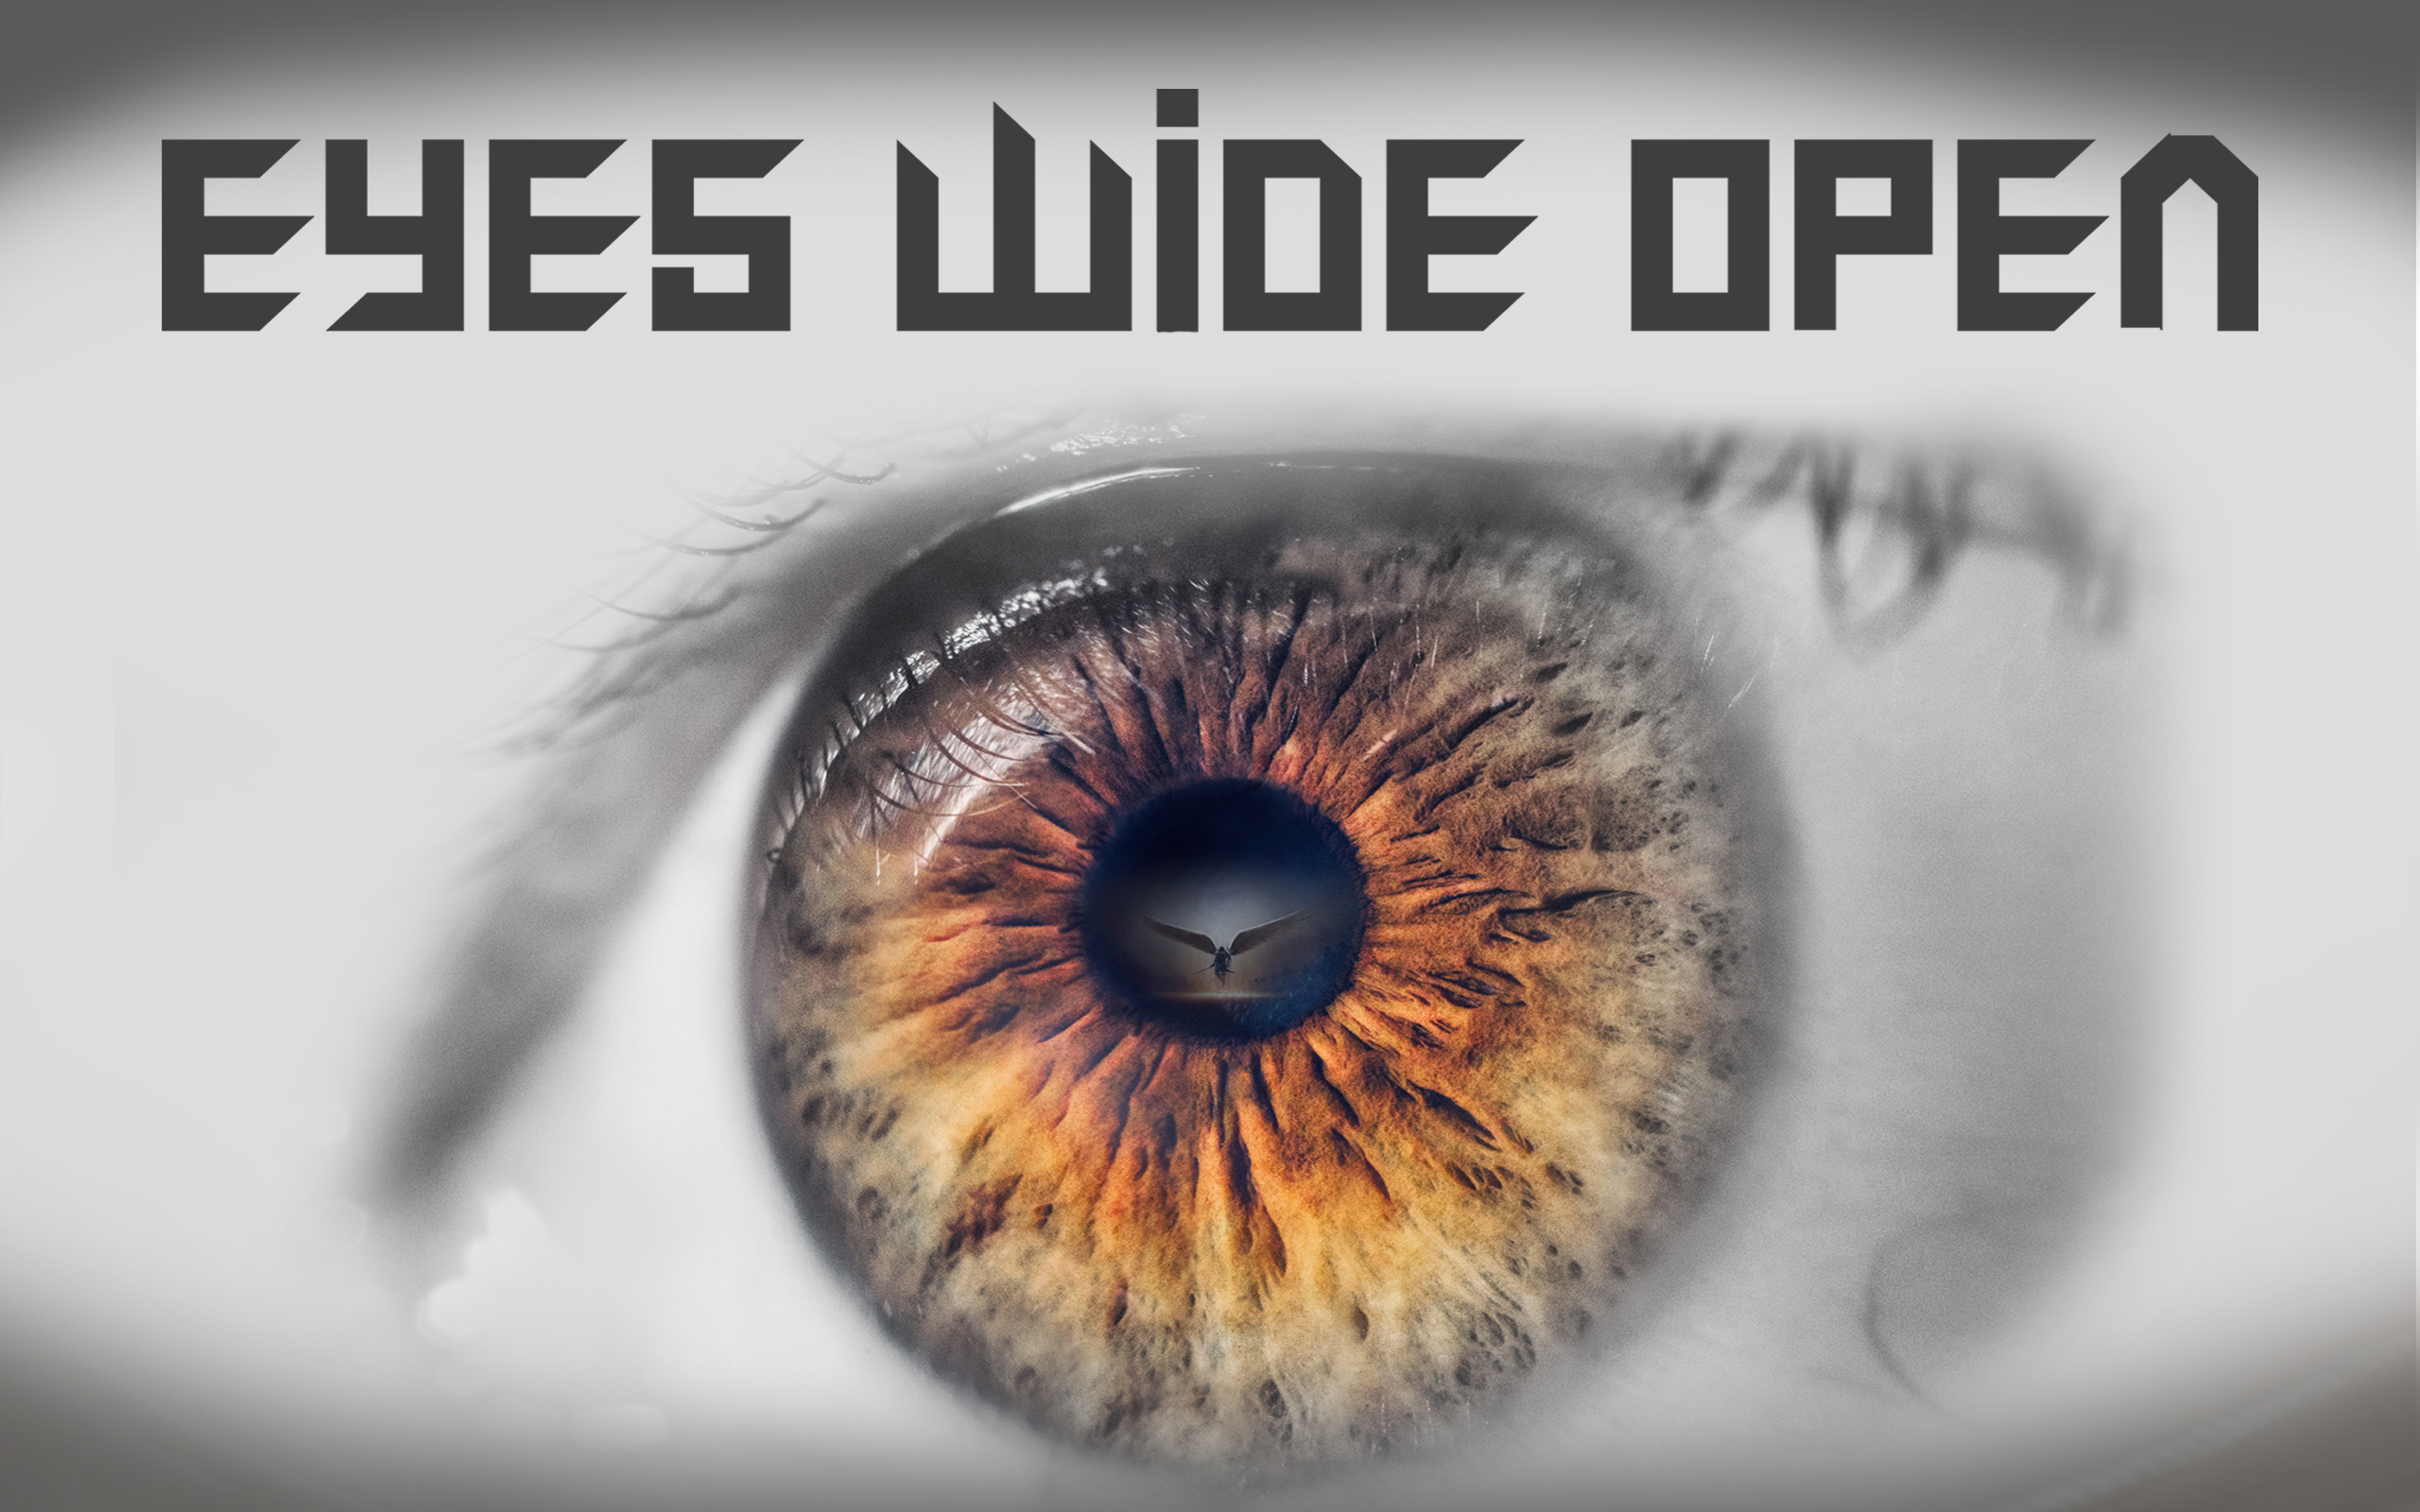 Eyes wide open wide website event image